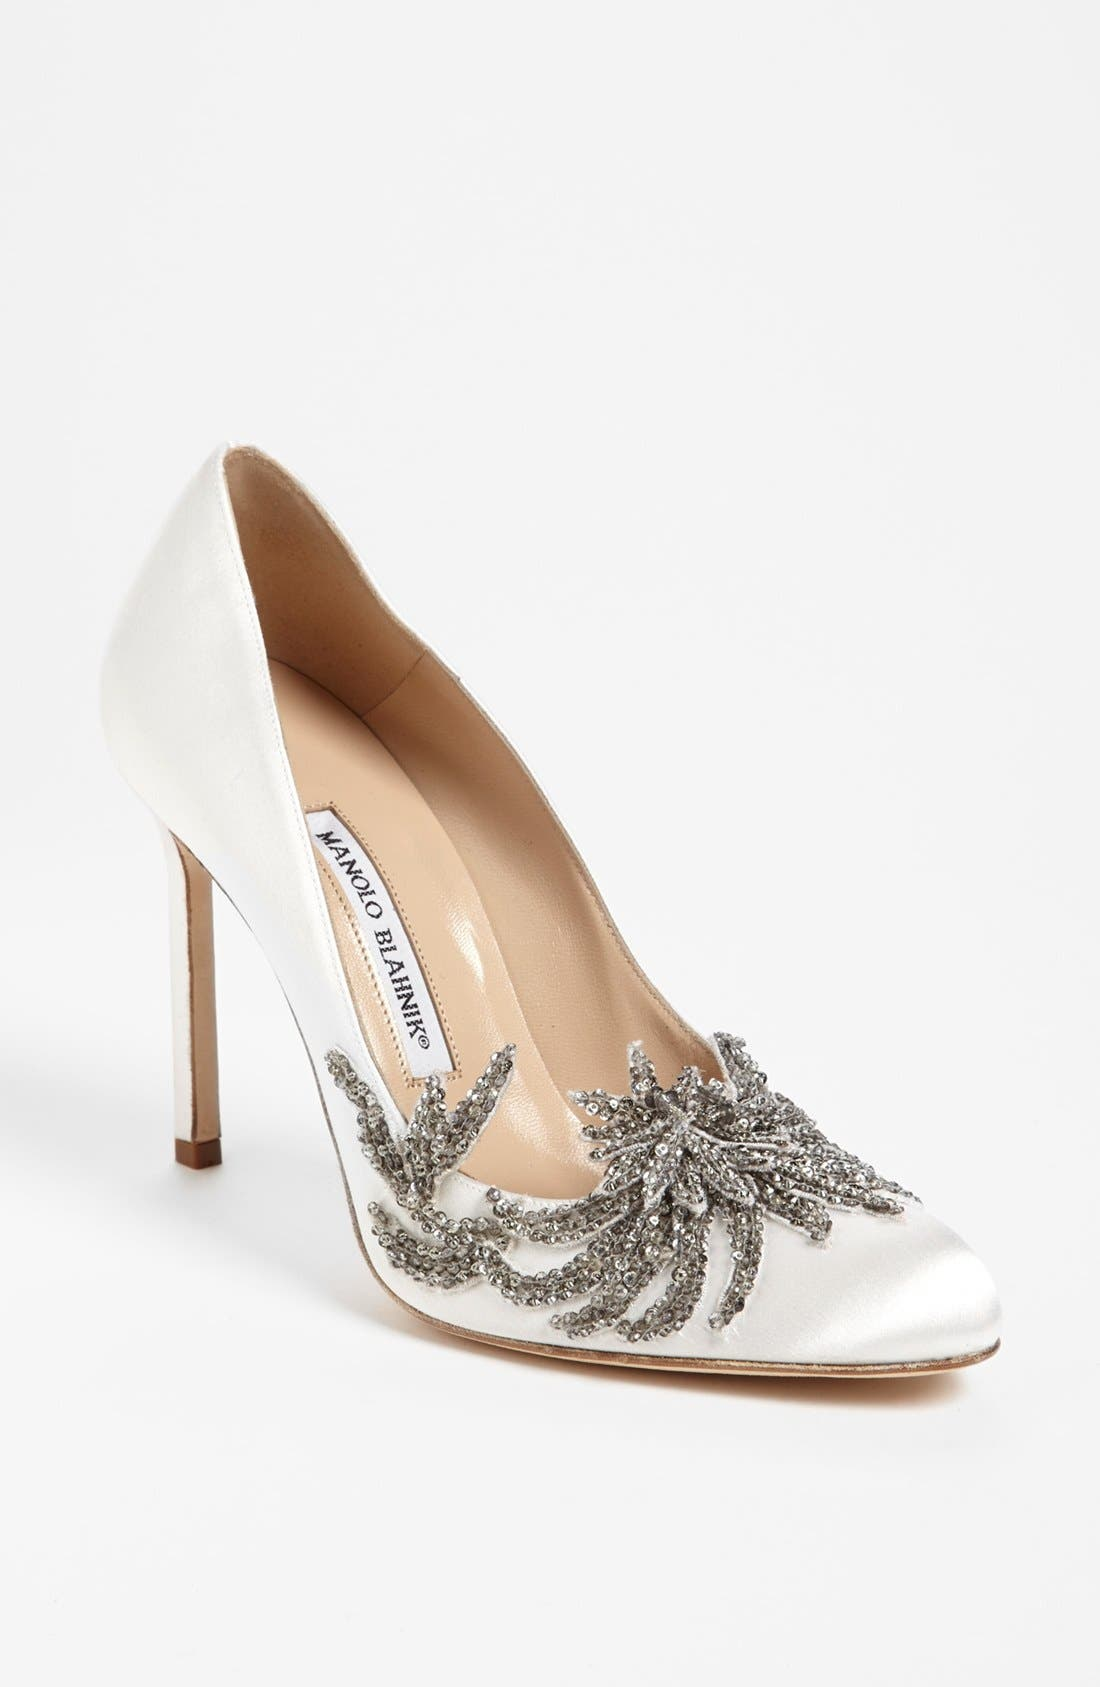 Main Image - Manolo Blahnik 'Swan' Pump (Women)